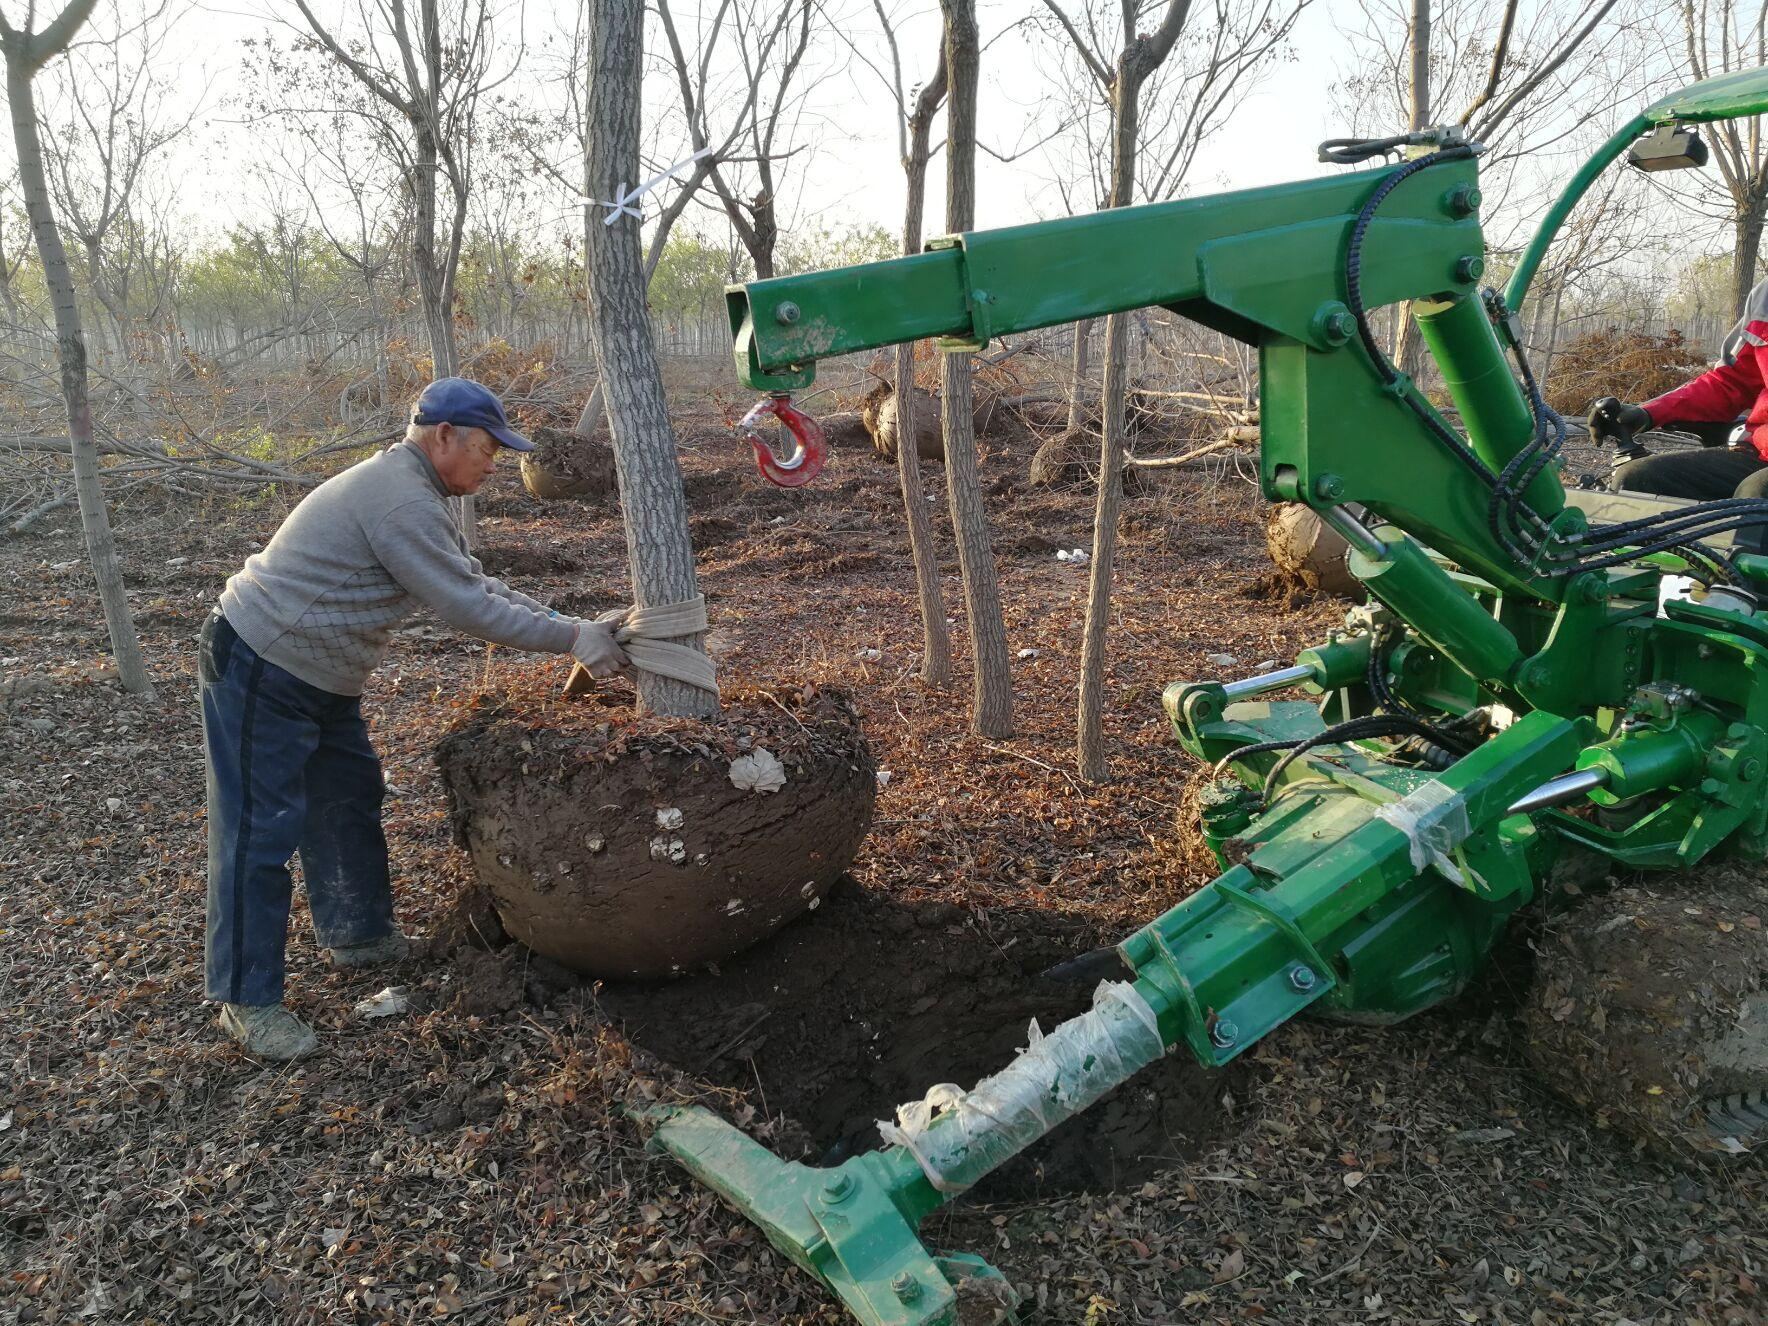 crawler Tree spade or tree transplanter used in Garden 8